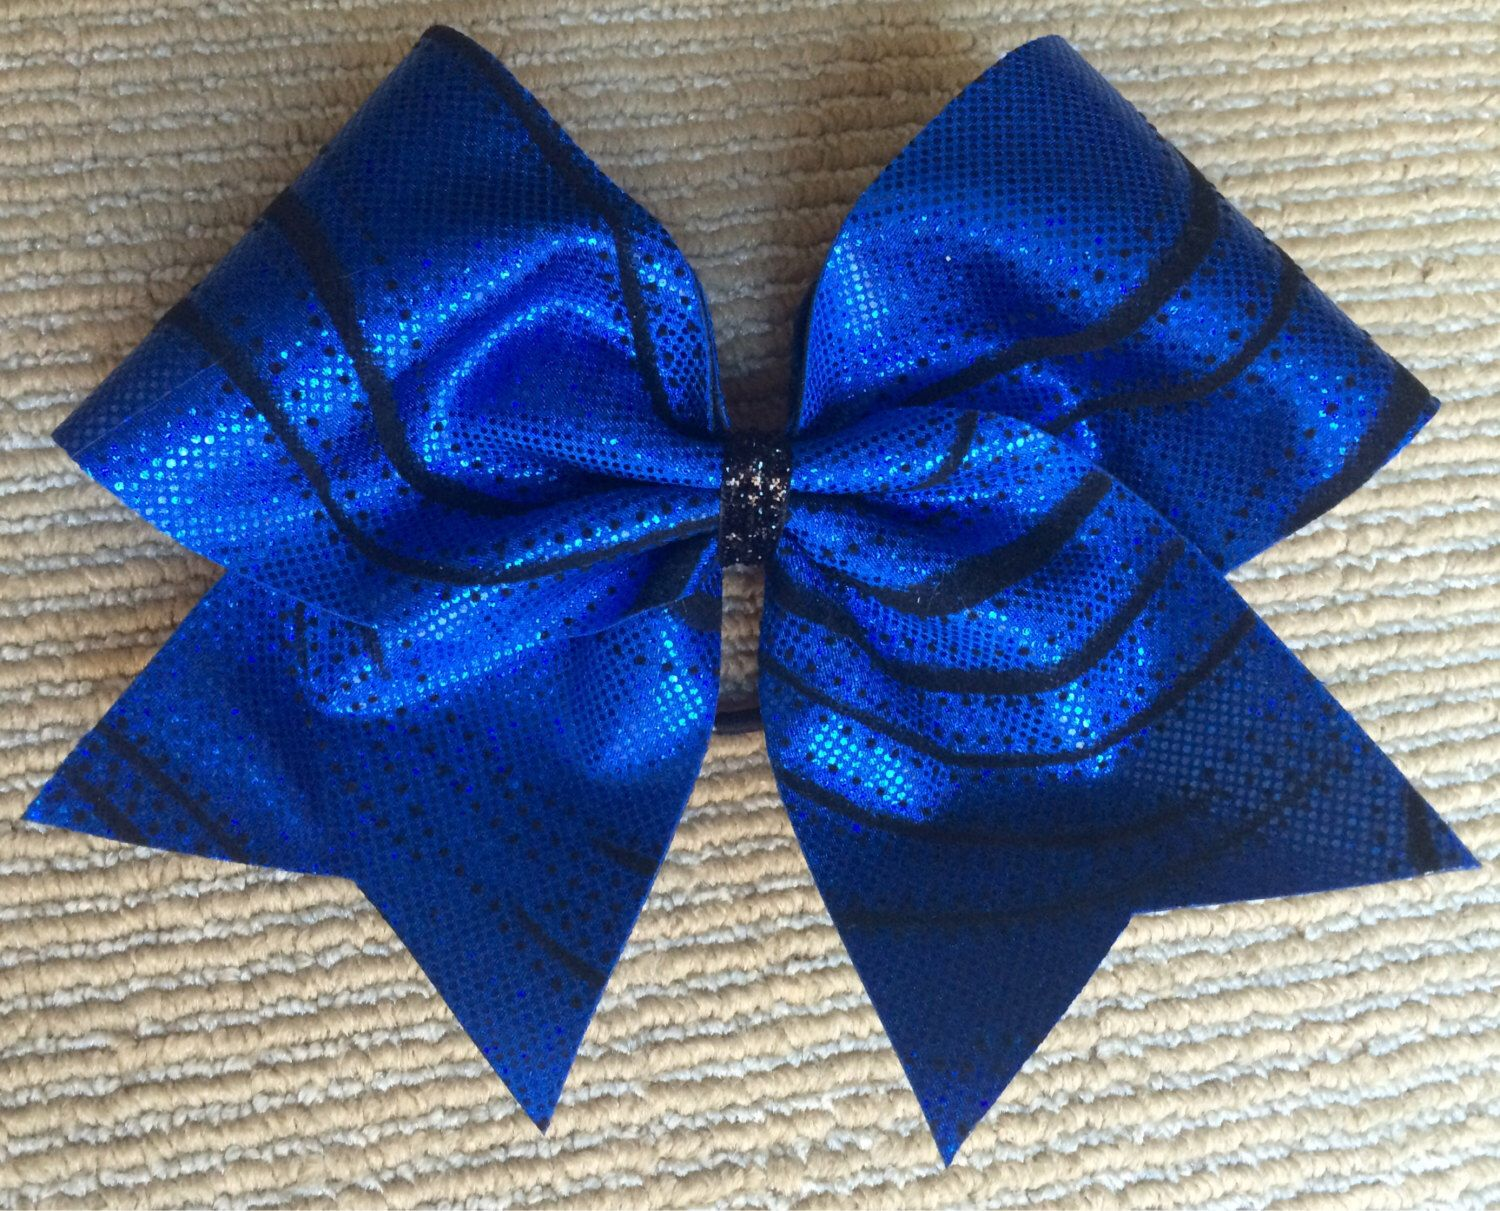 Cheer Bow - Royal Blue with Black  by FullBidBows on Etsy https://www.etsy.com/listing/205733618/cheer-bow-royal-blue-with-black